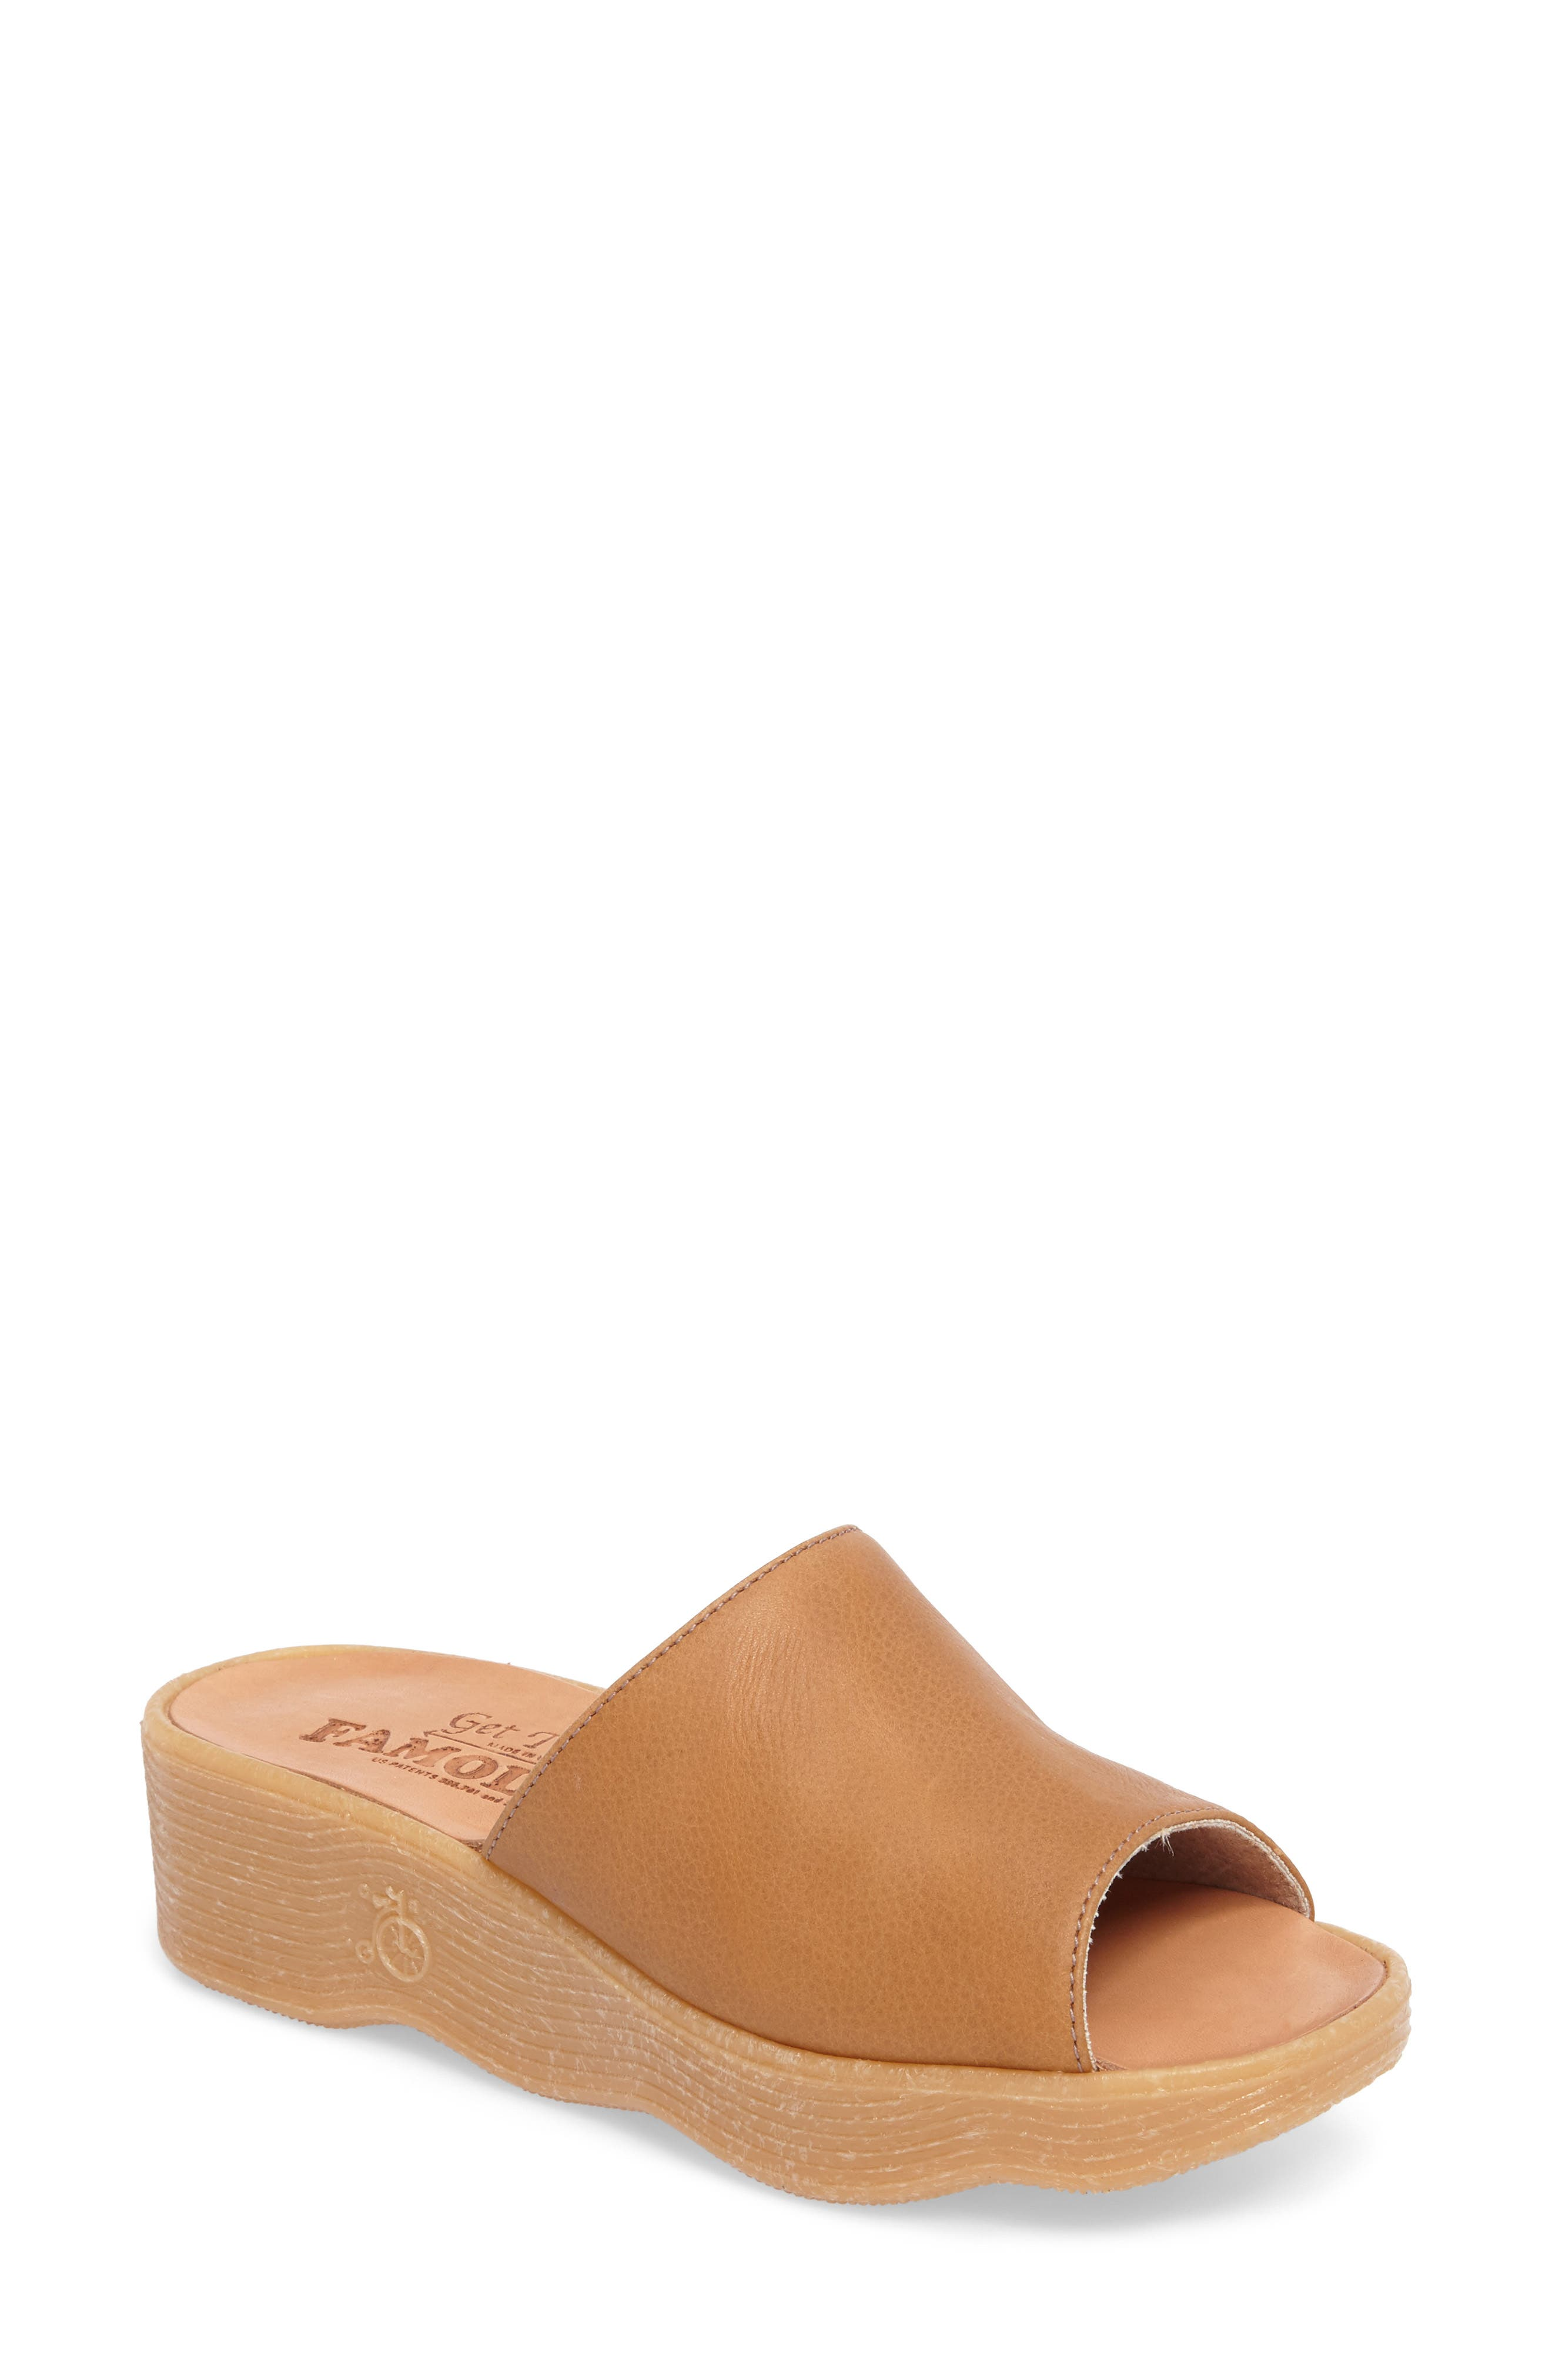 Slide N Sleek Wedge Slide Sandal,                         Main,                         color, COGNAC LEATHER